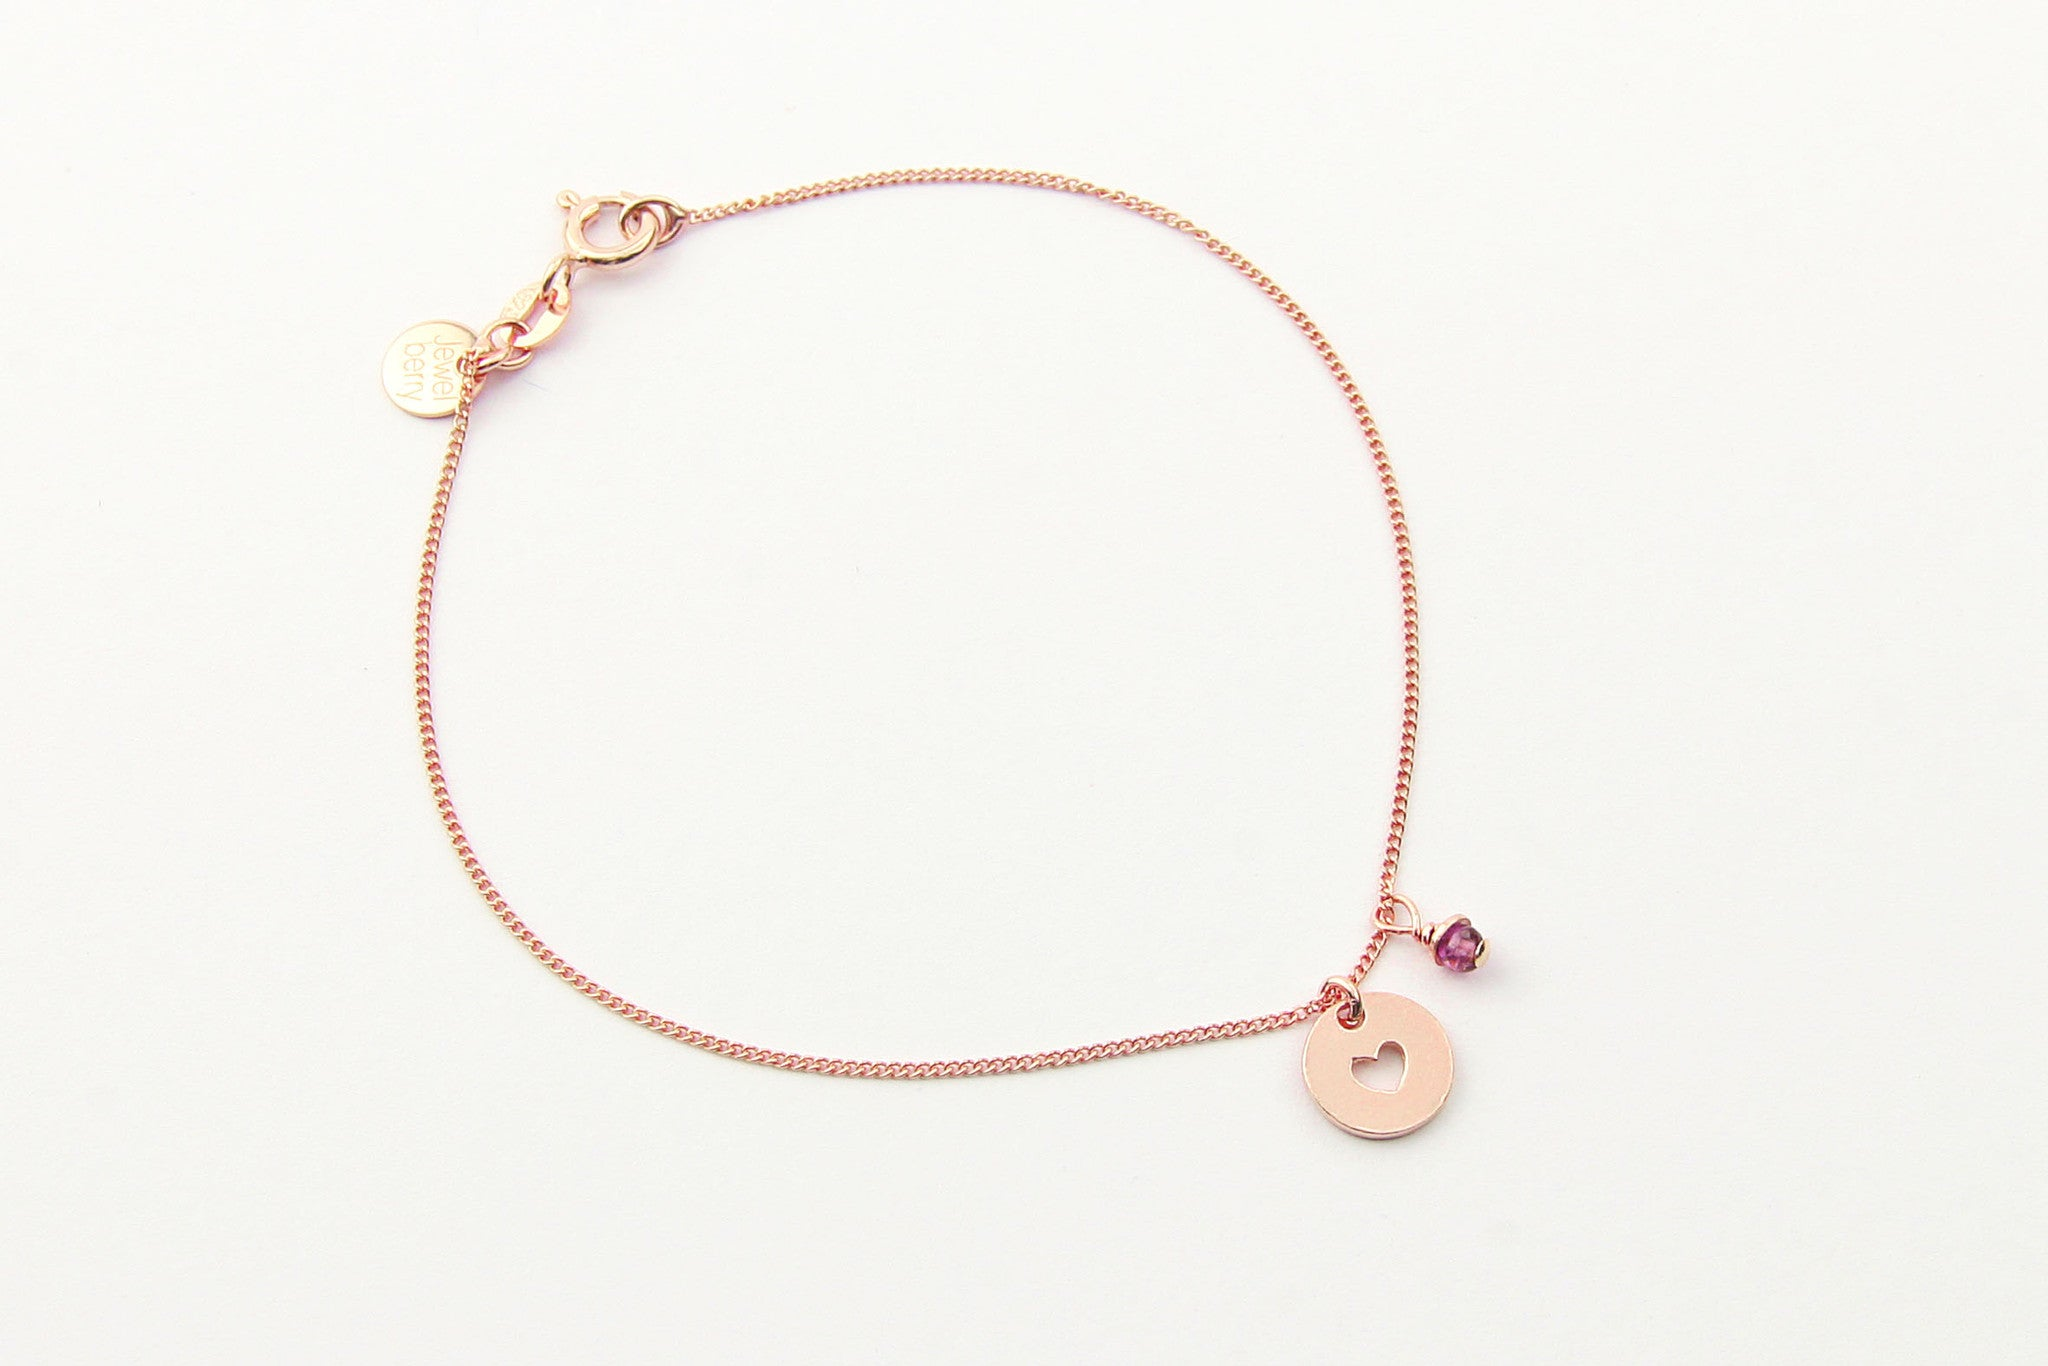 jewelberry armband bracelet love token rose gold plated sterling silver fine jewelry handmade with love fairtrade curb chain